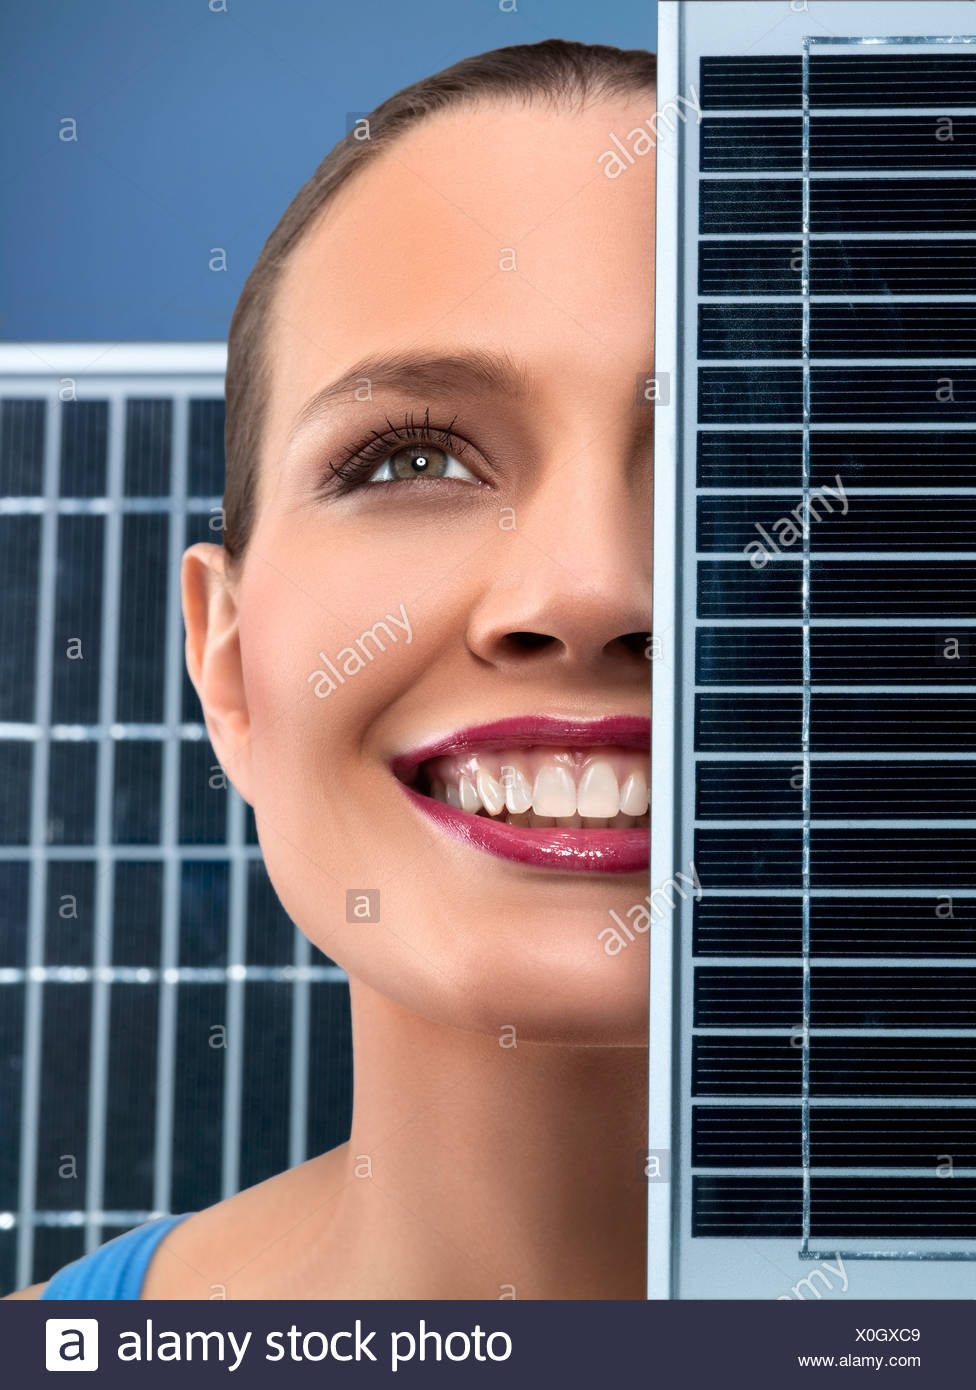 Young happy woman near solar panels, studio shot - Stock Image